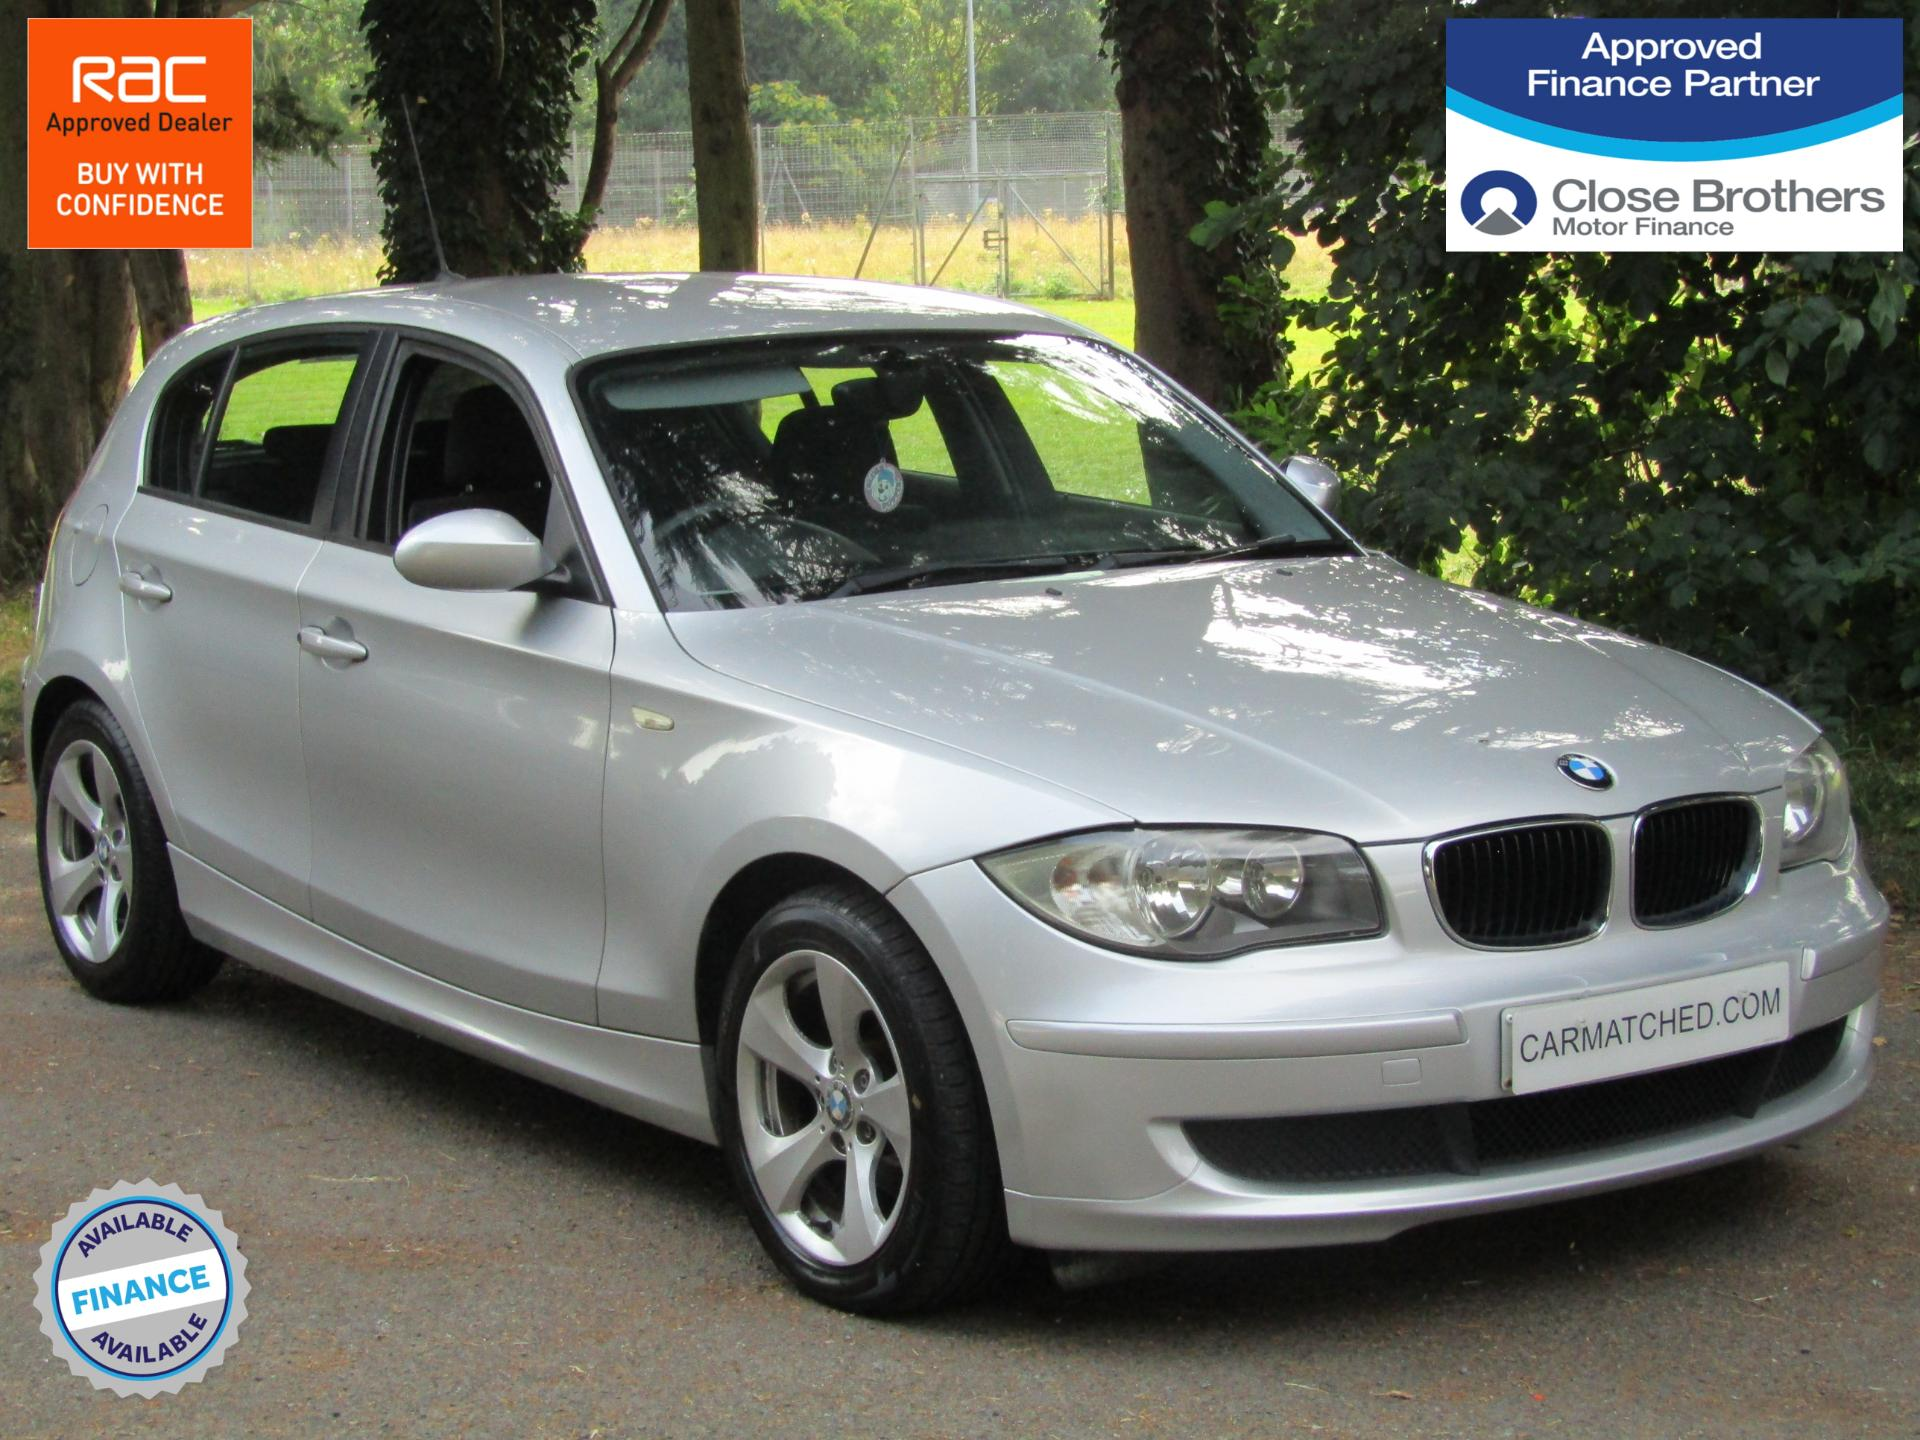 2009 (09) BMW 1 Series 118d ES 5dr For Sale In Broadstairs, Kent